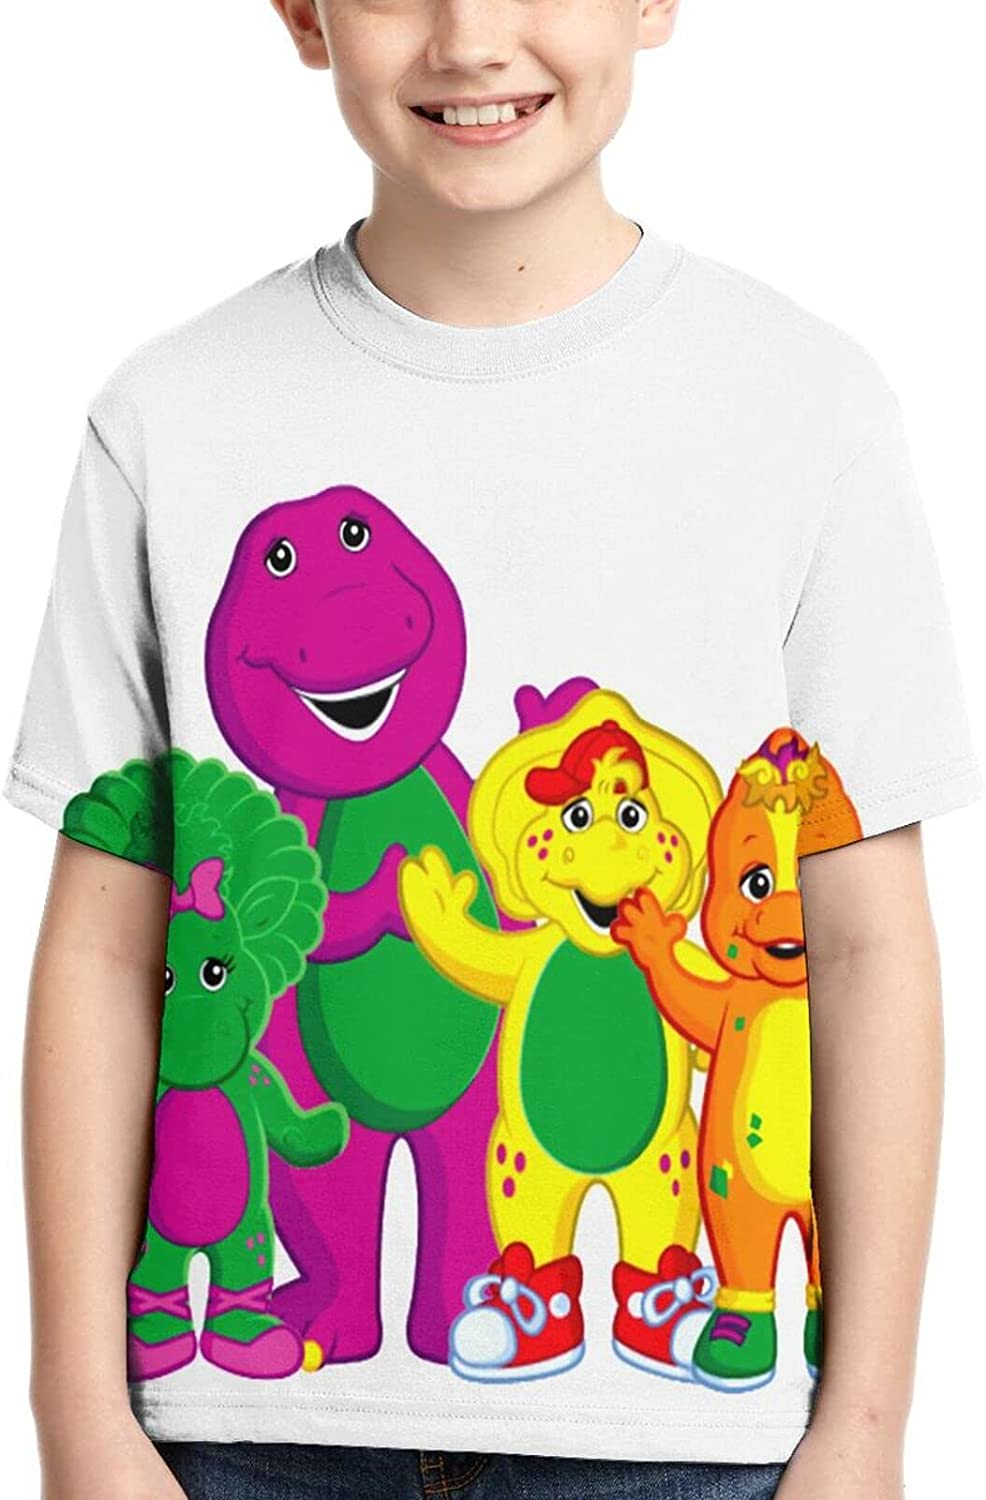 Barney & Friends T Shirt,3D Print Funny Polo Shirts Short Sleeve Tops,for Youth Tee Boys Girls